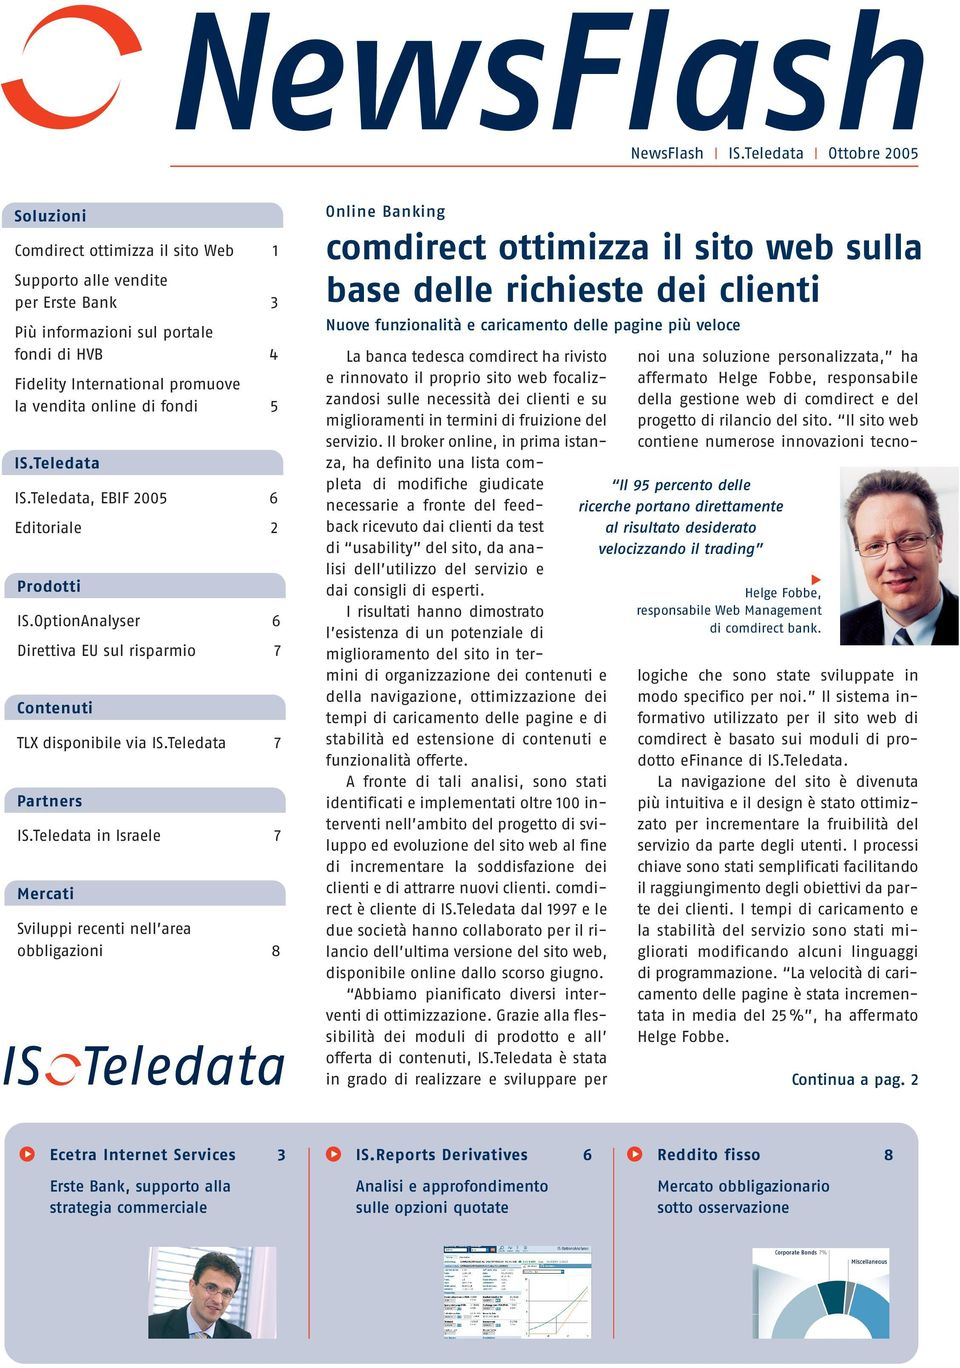 di fondi 5 IS.Teledata IS.Teledata, EBIF 2005 6 Editoriale 2 Prodotti IS.OptionAnalyser 6 Direttiva EU sul risparmio 7 Contenuti TLX disponibile via IS.Teledata 7 Partners IS.